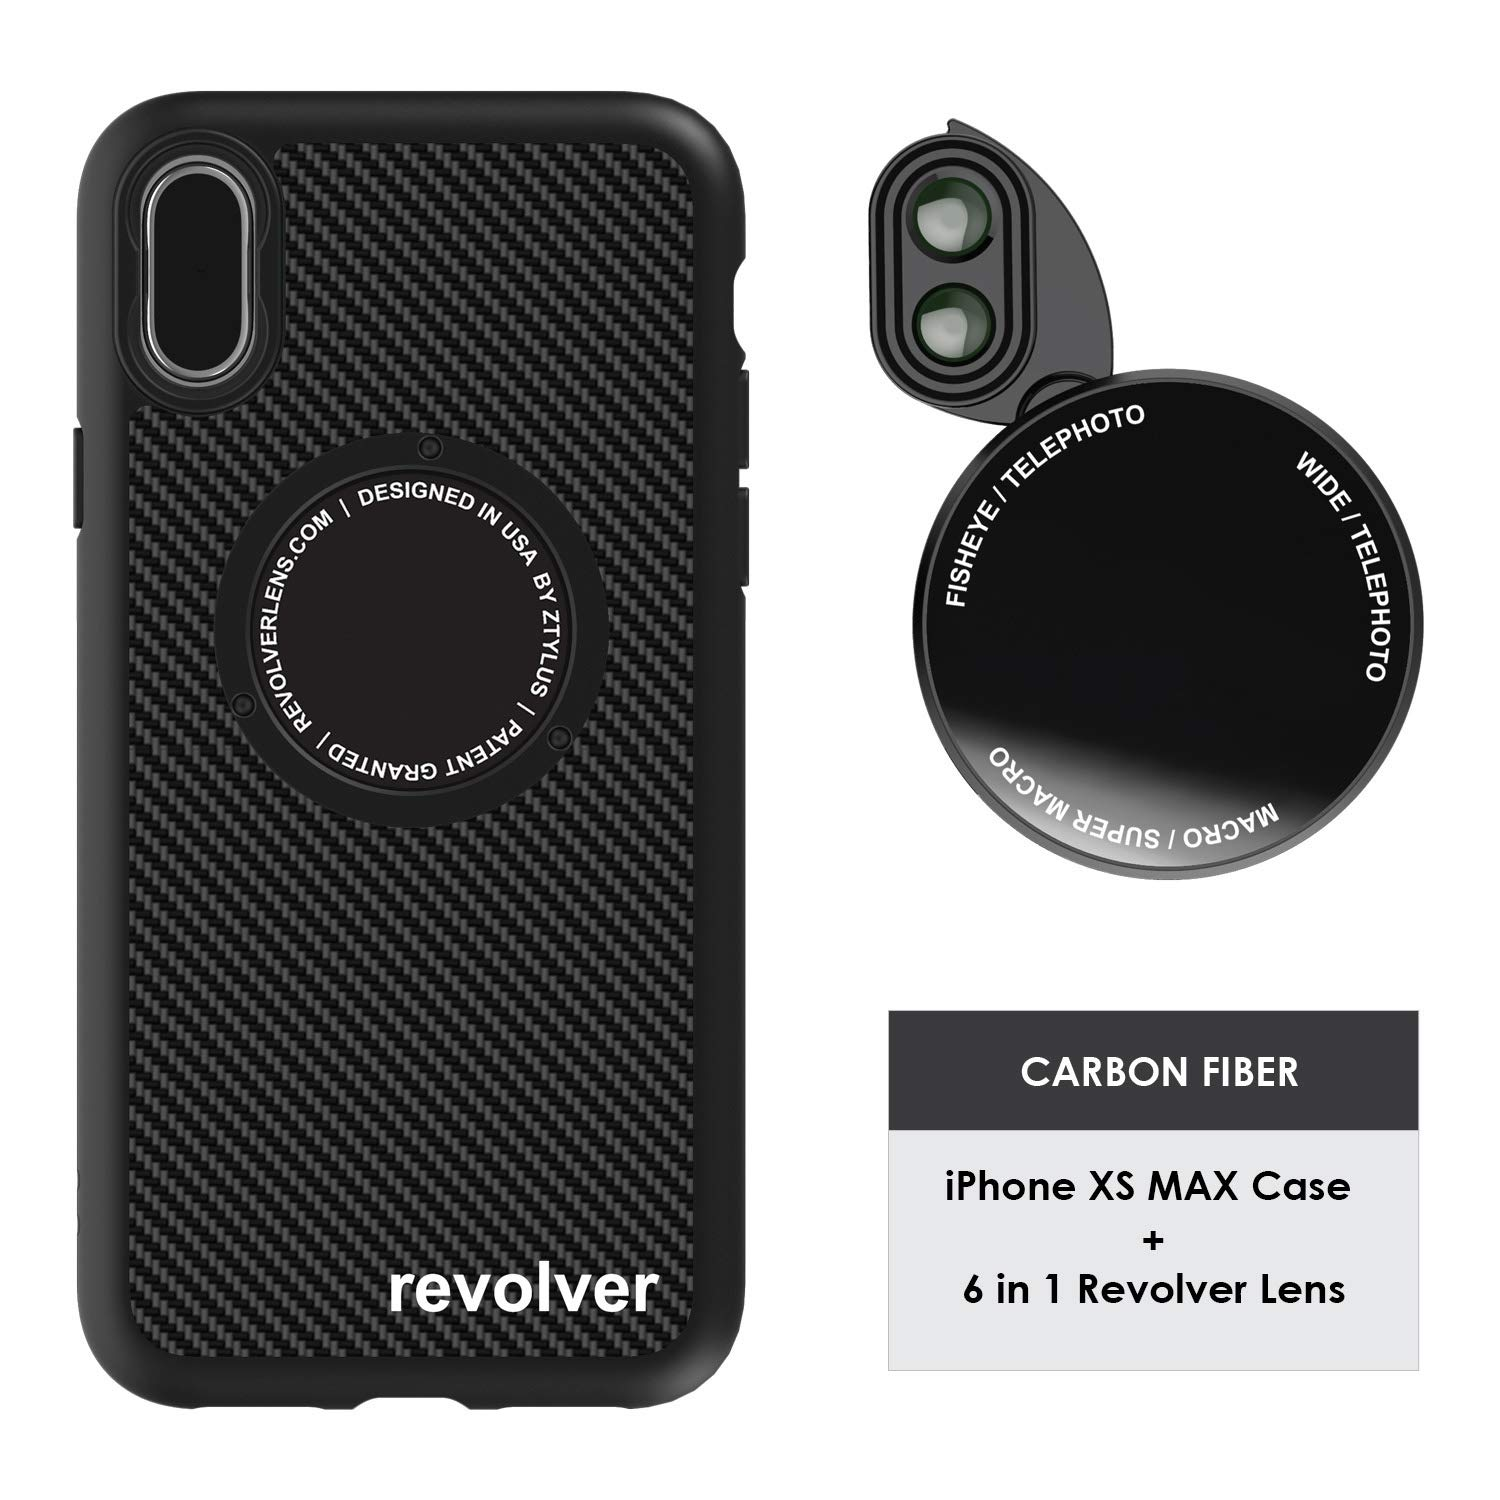 Ztylus Designer Revolver M Series Camera Kit: 6 in 1 Lens + iPhone Xs MAX Case, Smartphone Lens Kit Accessory- 2X Telephoto Lens, Macro/Super Macro Lens, Fisheye/Wide Angle Lens (Black Carbon Fiber) by Ztylus